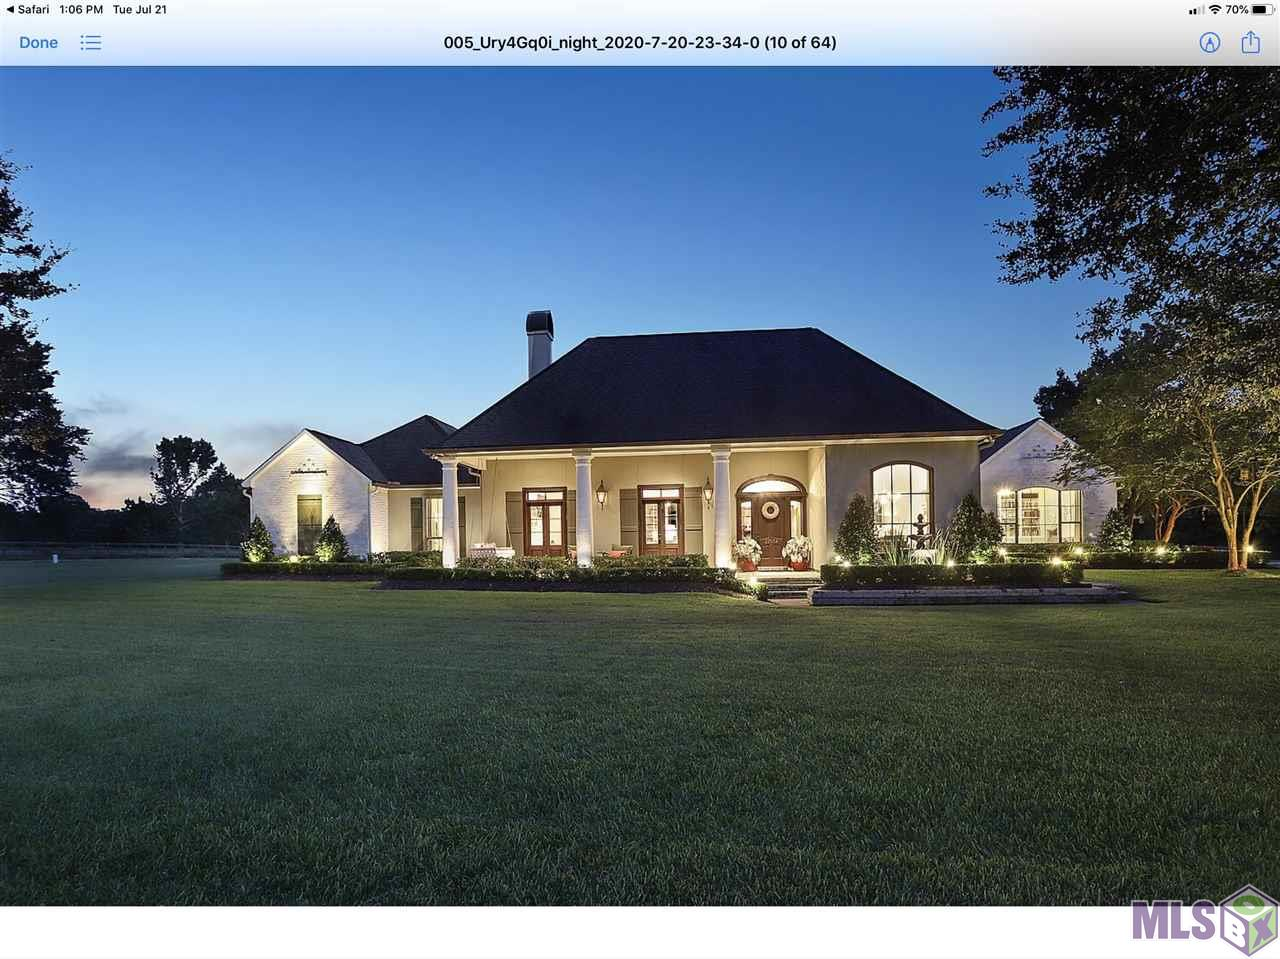 ABSOLUTELY STUNNING is this one-of-a-kind Luxury Home in a highly desirable area of Zachary.  Situated on over 14 acres, this enclave allows you to experience the privacy and freedom of country living while being only a few minutes from the center of town.  As you enter the gated property, you'll see the sprawling, stocked pond hosting seasonal guests like ducks and geese.  The home is tucked within several live oak trees and extensive landscaping, while donning limewashed brick, showcasing it's traditional architecture.  The house is almost 4000 square feet and has been updated with modern aesthetics while preserving its craftsmanship and style.  Featuring 4 bedrooms, 3.5 bathrooms and an office/Bonus/Recreational room, large kitchen with a sitting area and custom bar, spacious dining room and natural light filled, expansive Living/Family room overlooking the pool and patio.  The main suite also overlooks the pool and includes a segmented sitting room/office area and a newly renovated luxury bathroom and master closet with custom built-ins.  Each additional bedroom accesses an ensuite bathroom and includes walk-in closets with custom built-ins. The pool area features a spacious patio, waterfall, iron safety gate and lanai enclosure, allowing for bug and debris free enjoyment any time of the year.  Listen to music indoors or outside while lounging in the saltwater pool with the integrated home surround sound system.  Enjoy the backyard views of the barn that includes an Apartment/Guest home, 2 storage bays and large covered porch with a swing.  Further back on the property, the Barn includes 3 stall stables situated with a large paddock, and includes a washing station and tack room.  All of these structures are supported by a whole-property generator to ensure that you, your guests or your animals are never without power.  THIS ONE IS A MUST SEE.